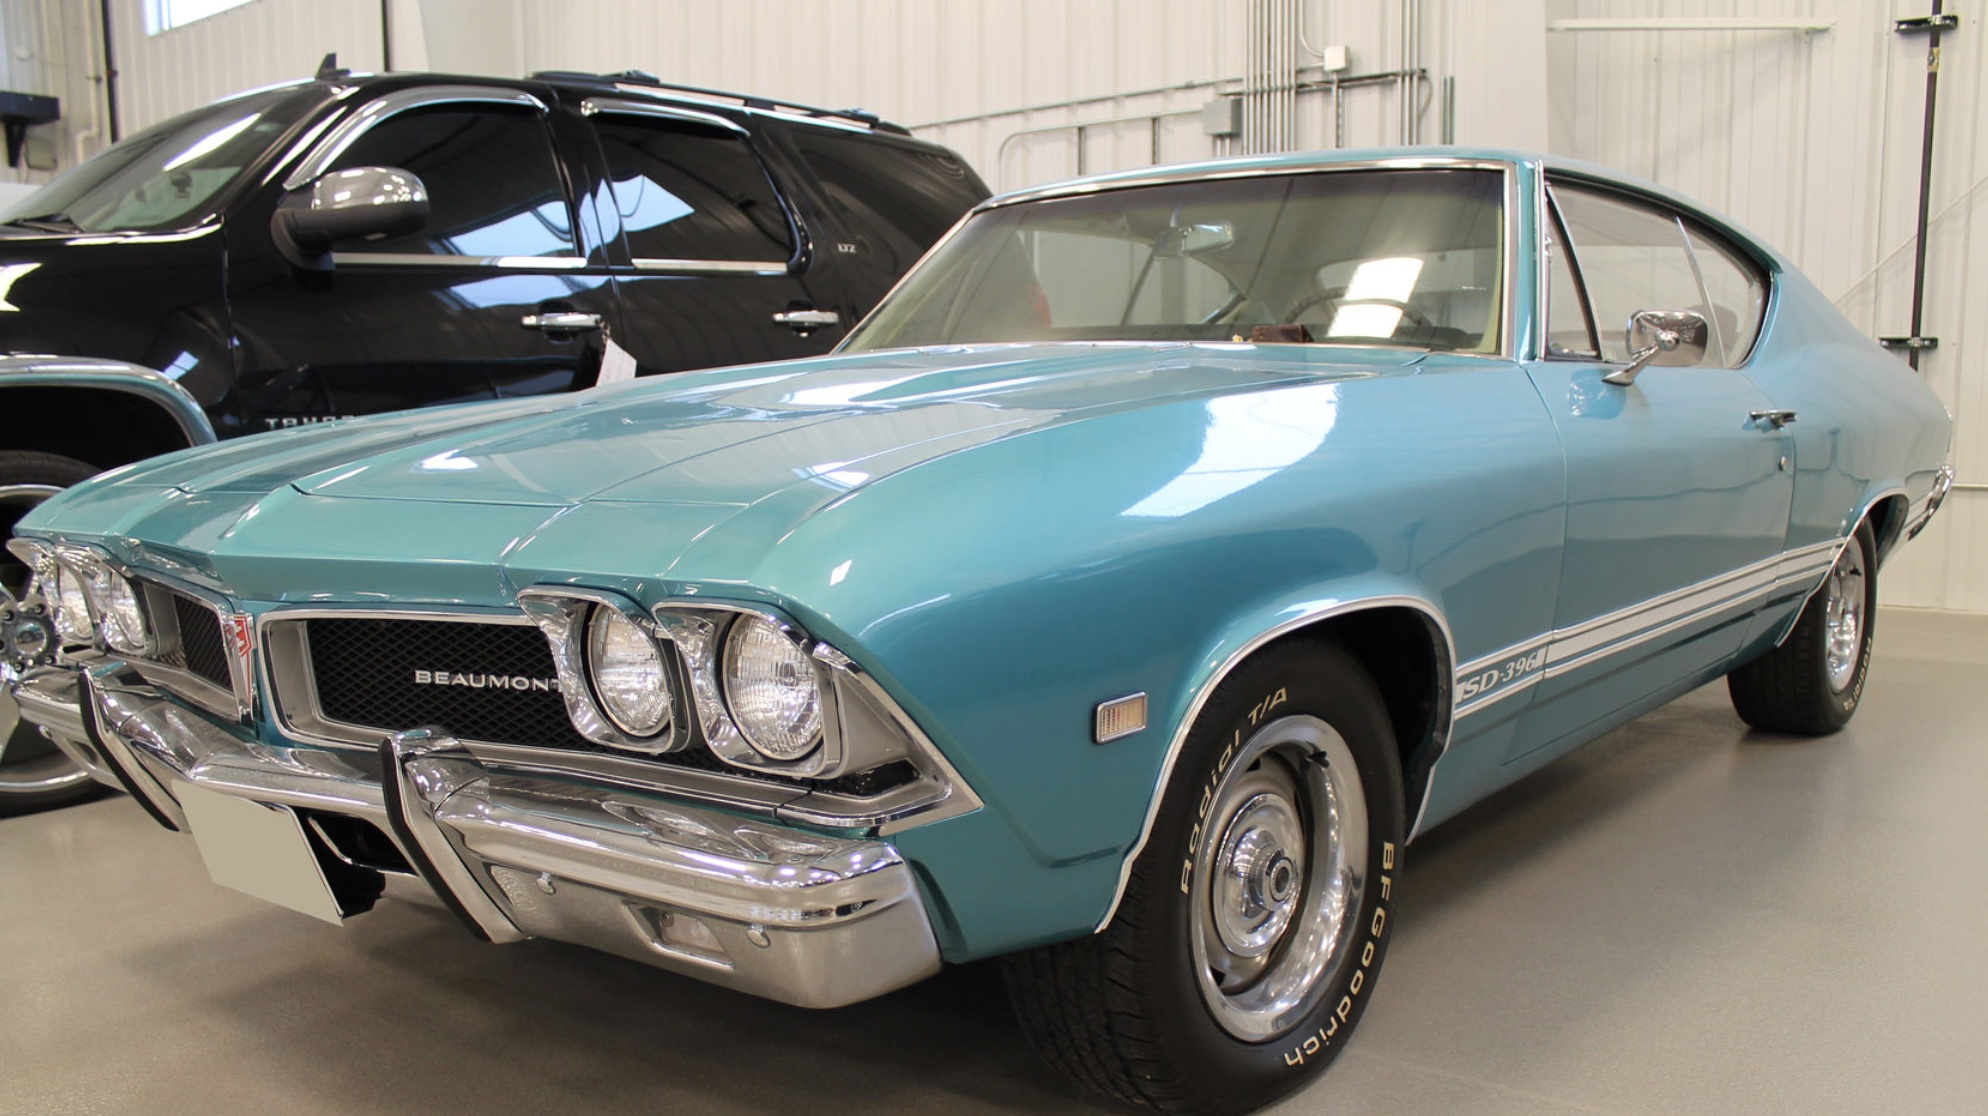 1968 Beaumont SD 396 blue front 3/4 auction